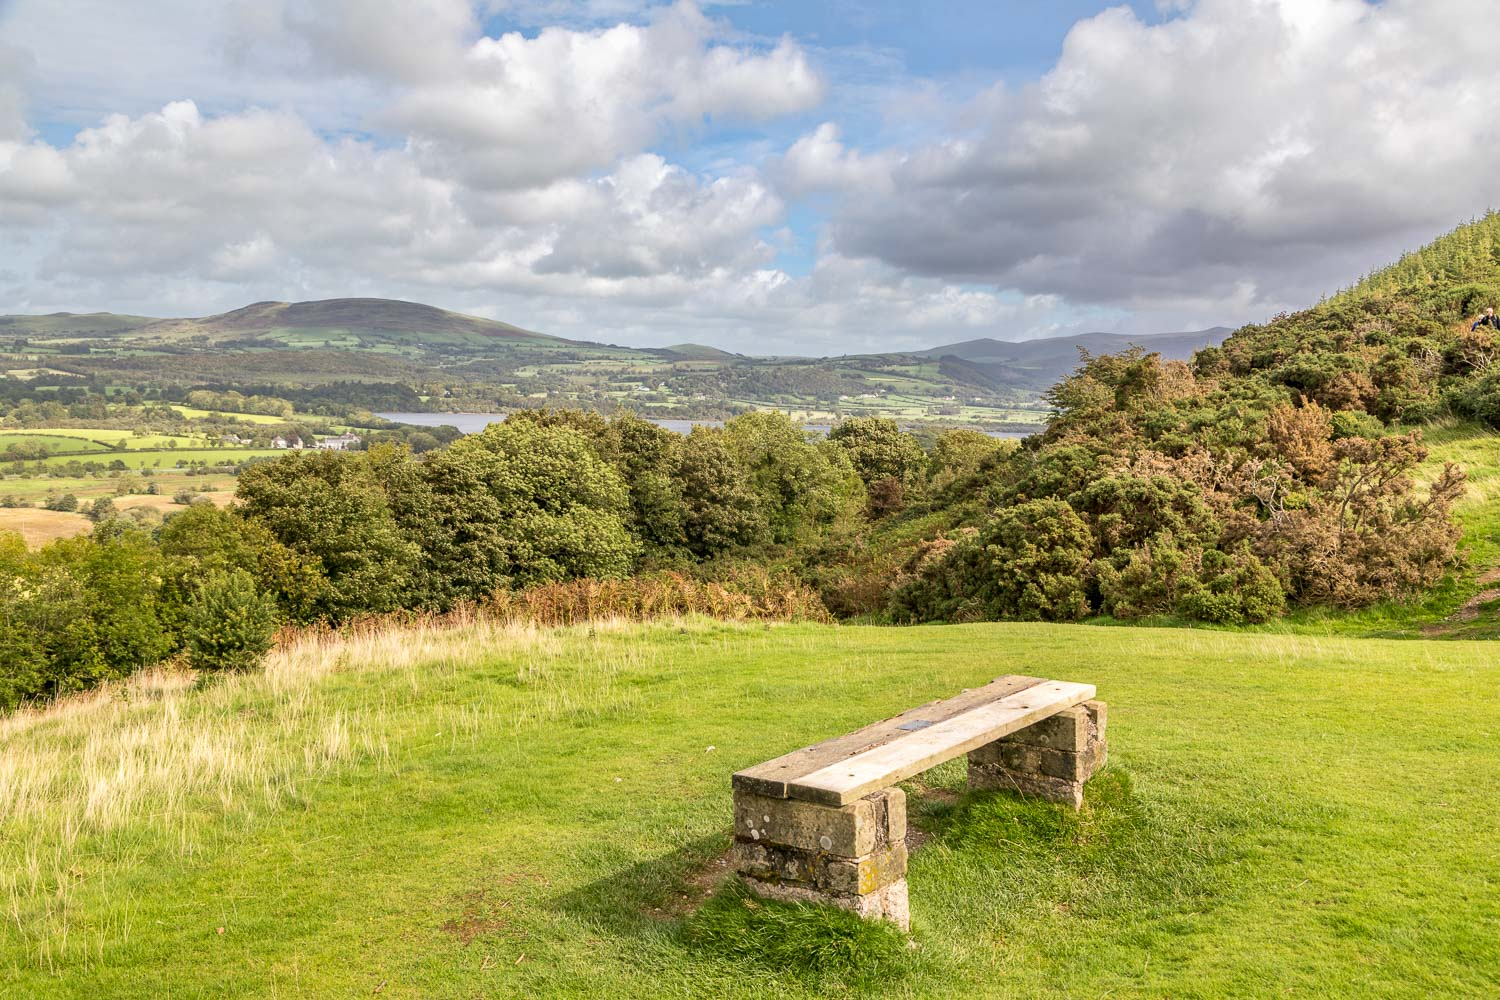 Bench overlooking Bassenthwaite Lake and the Wythop Valley